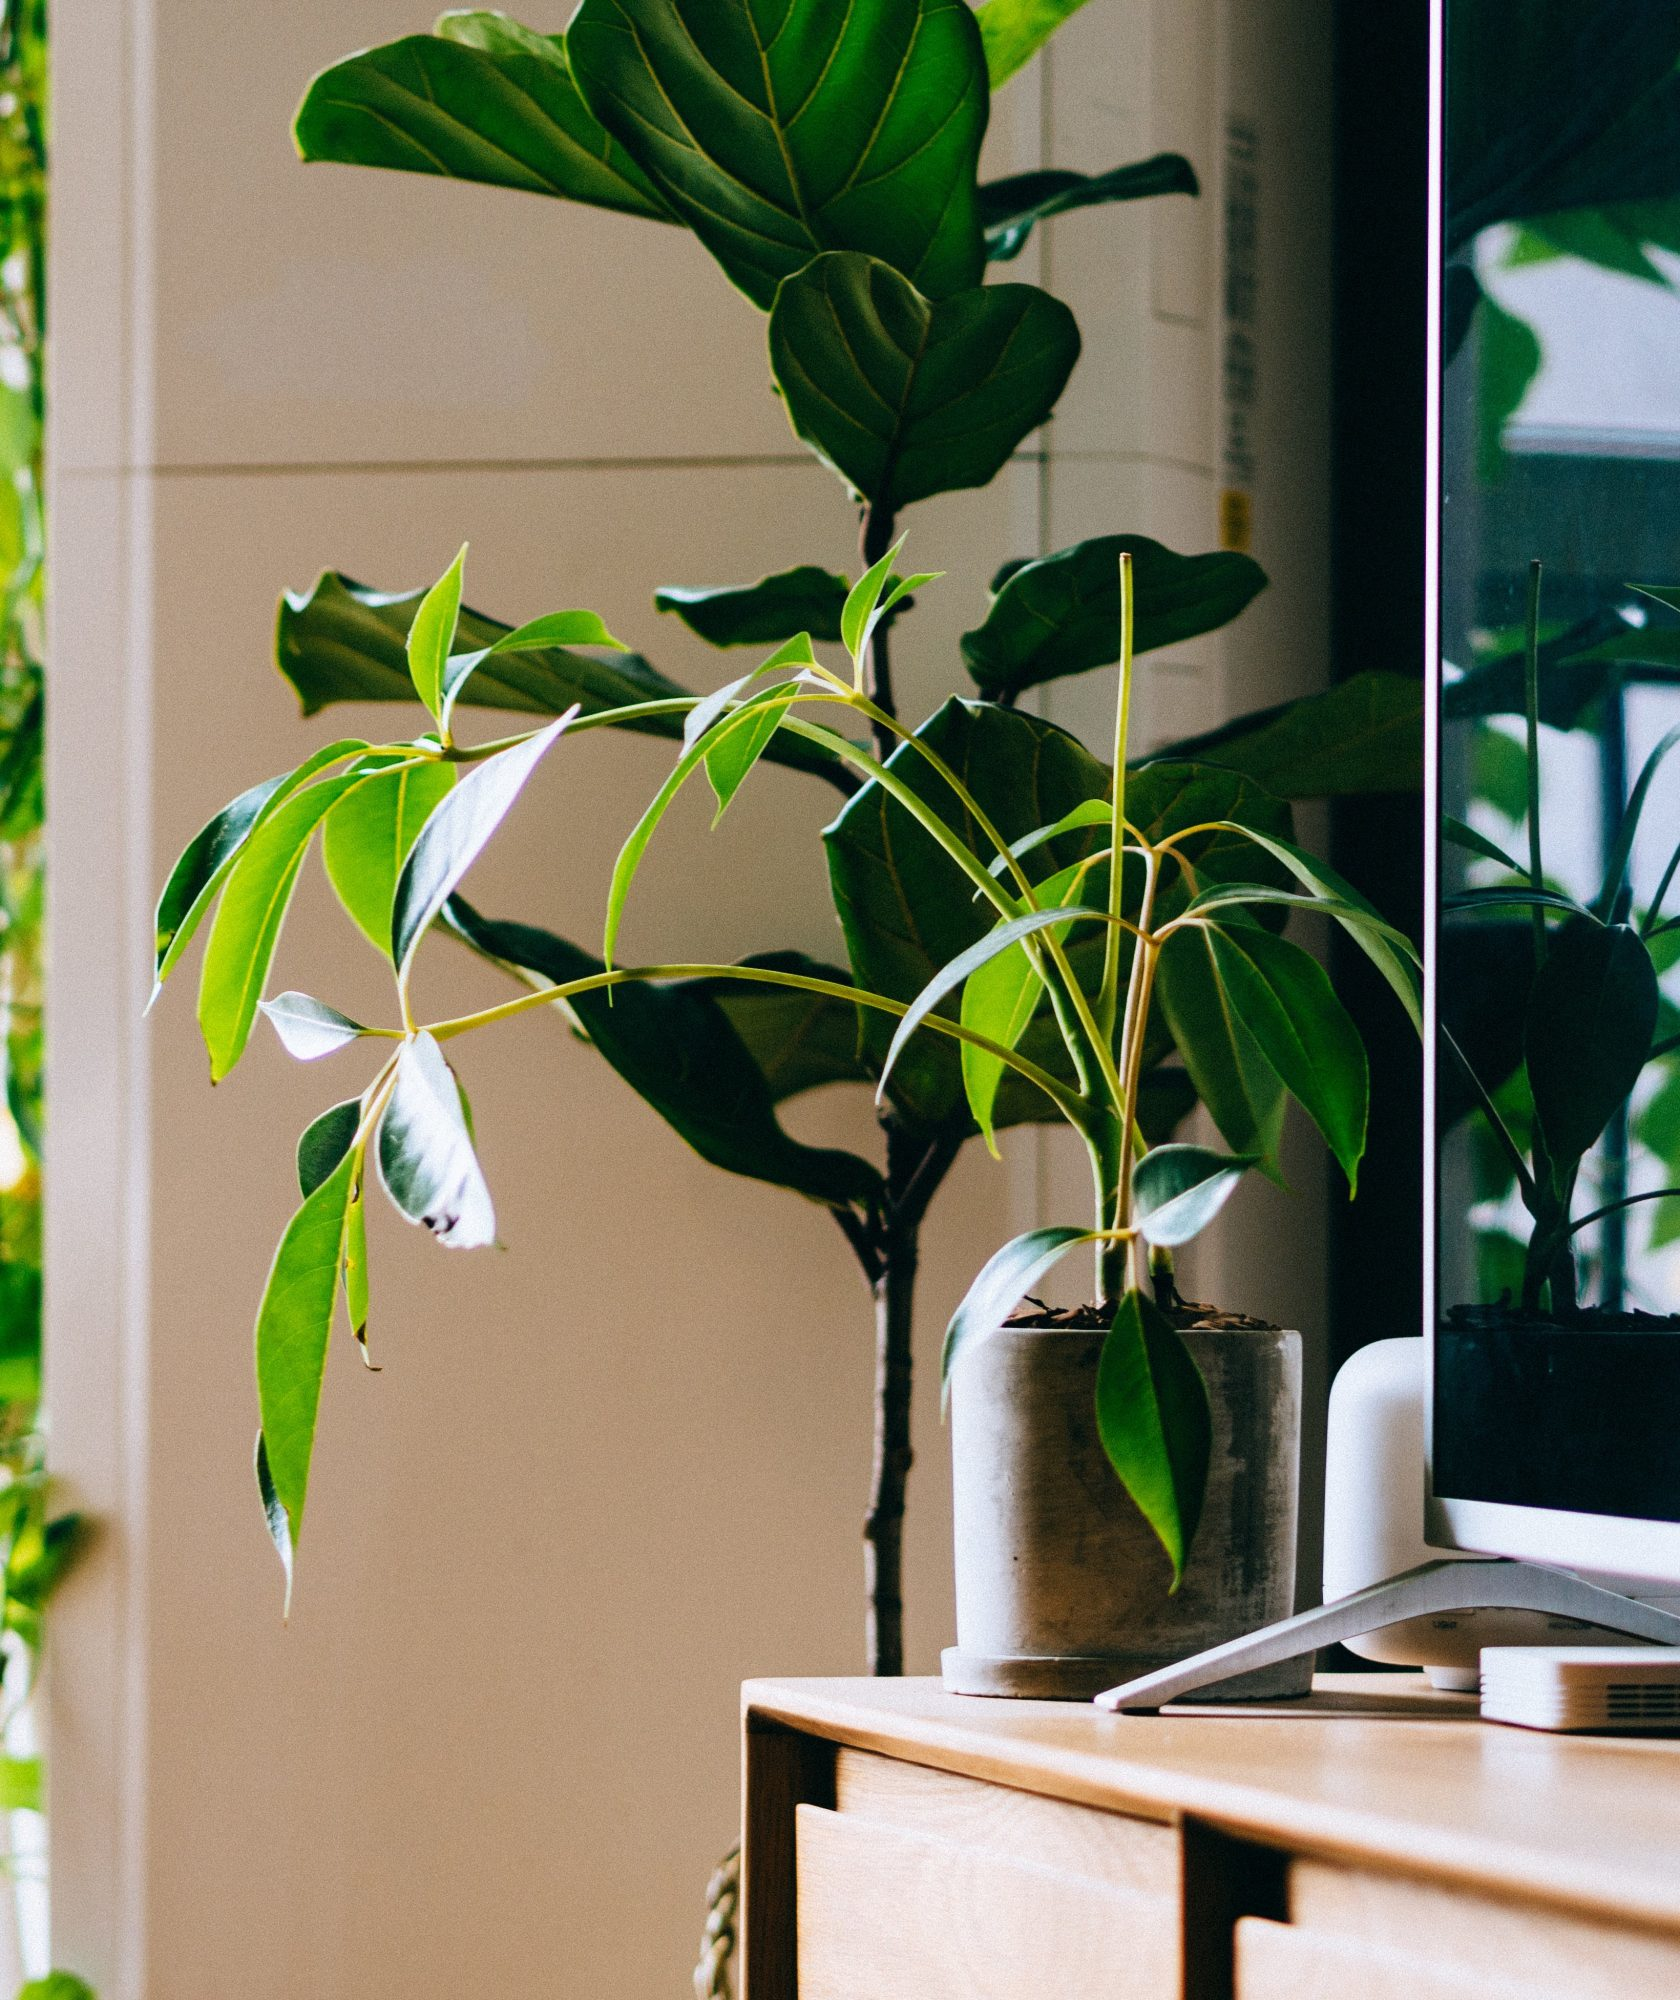 The Surprising Health Benefits of Owning House Plants